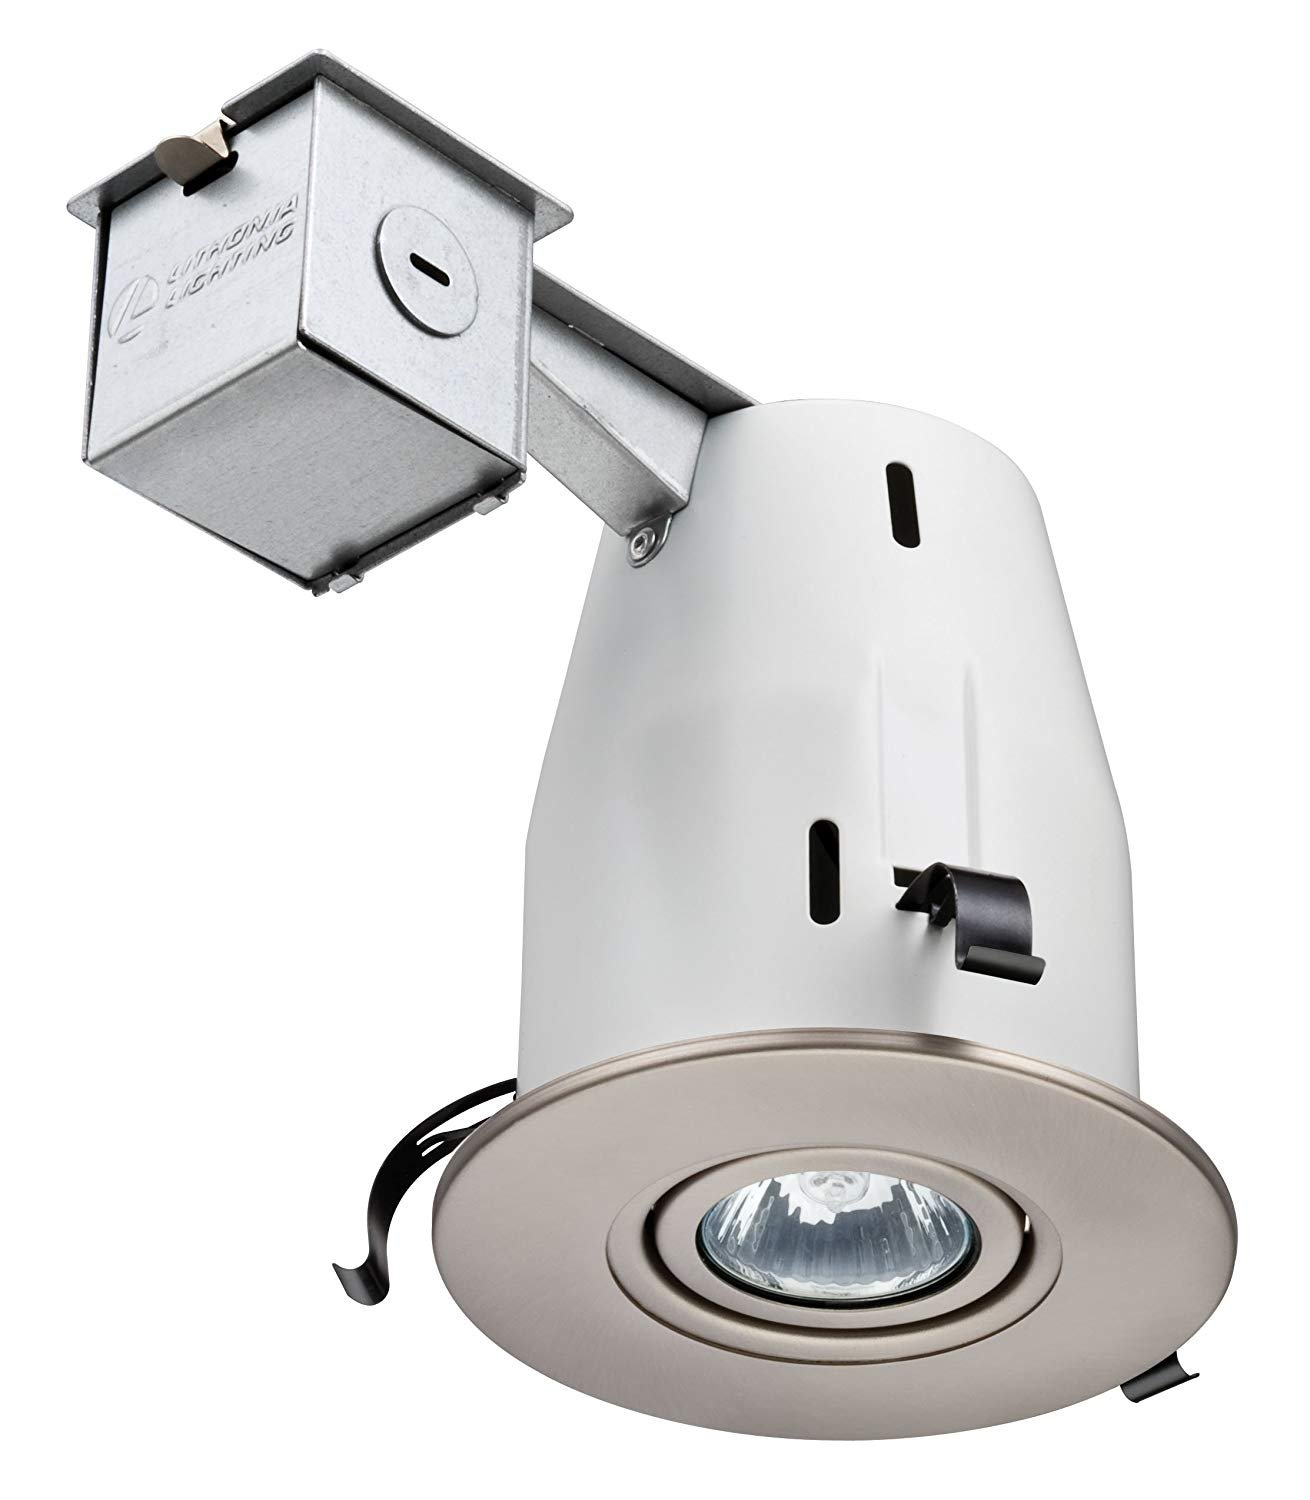 Lithonia Lighting LK4GBN M6 4 Inch Gimbal Kit with Halogen Lamp Included in Nickel